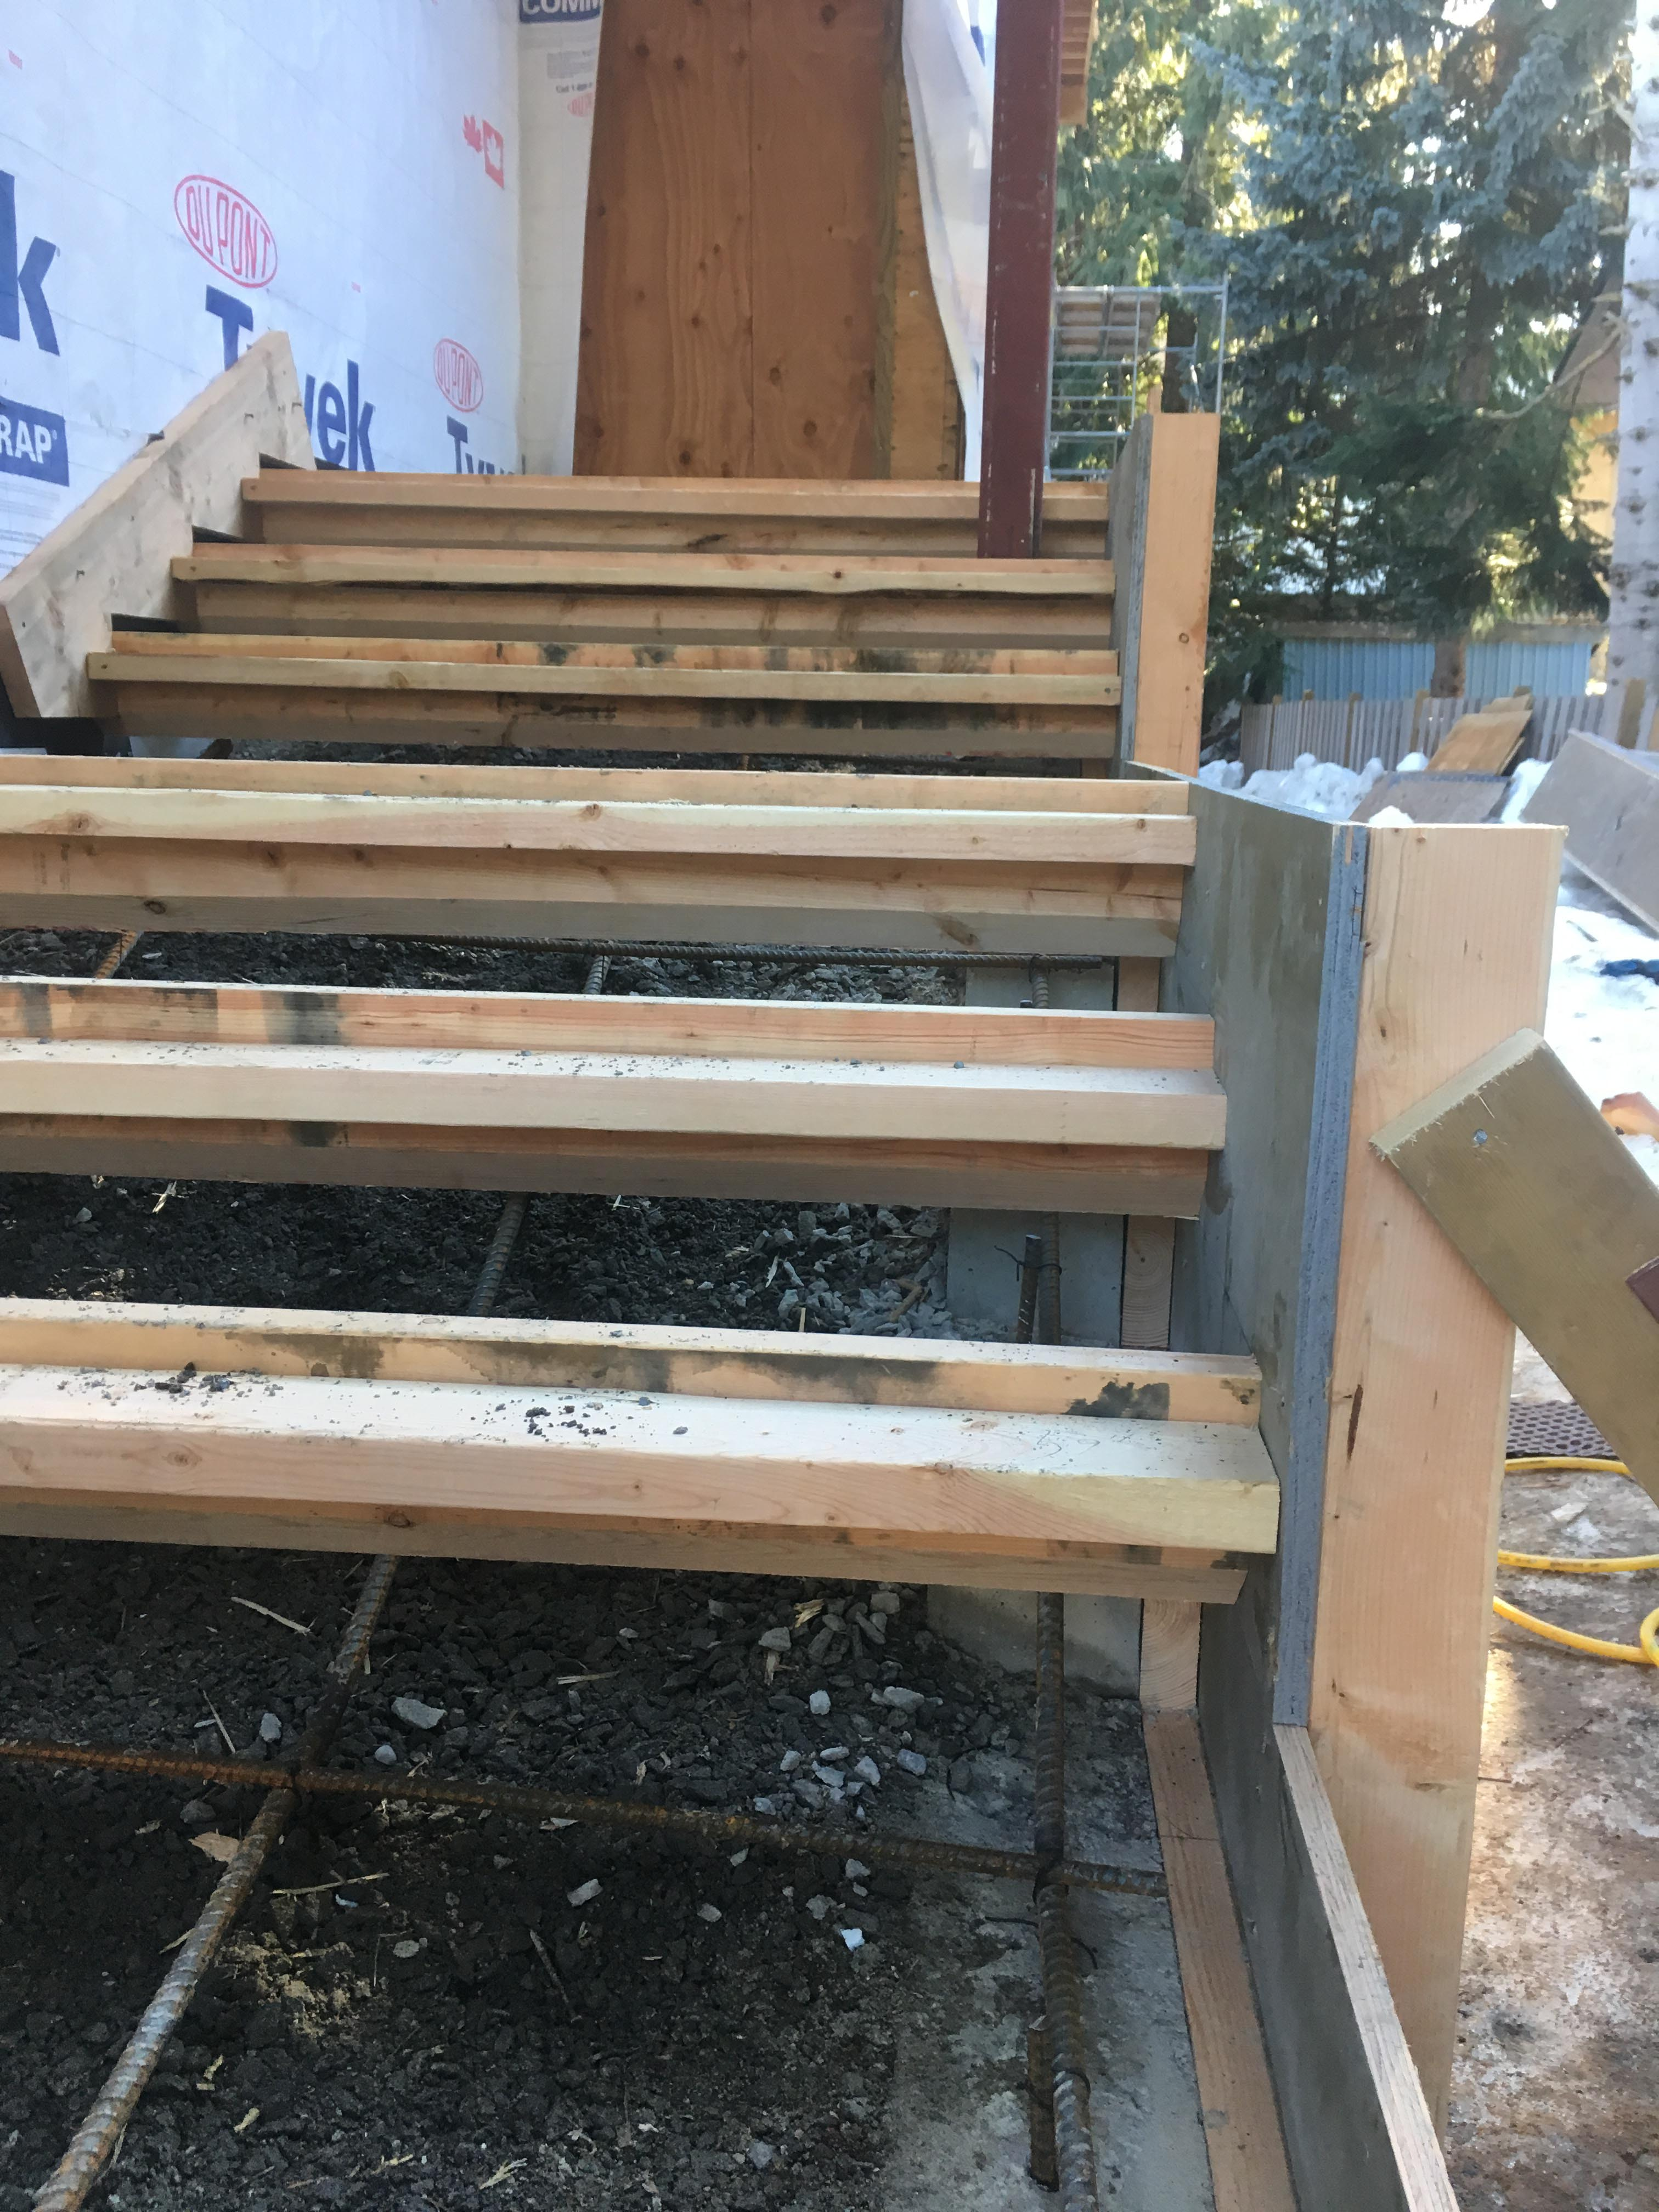 Pound 4 Pound, Framing and Forming. Side angle stairs Forming